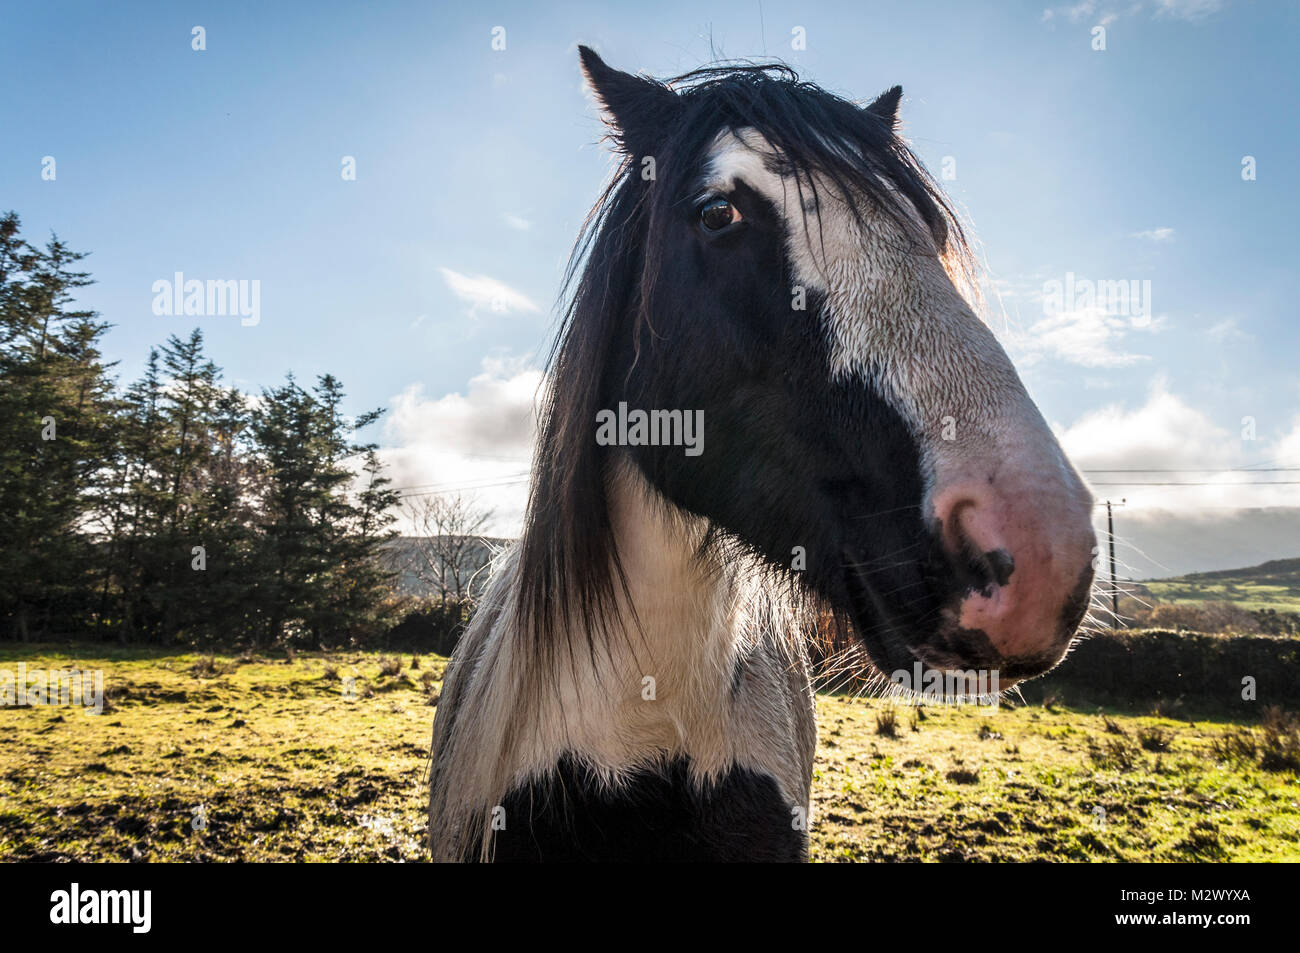 Portrait de cheval dans un champ dans le comté de Donegal, Irlande Photo Stock